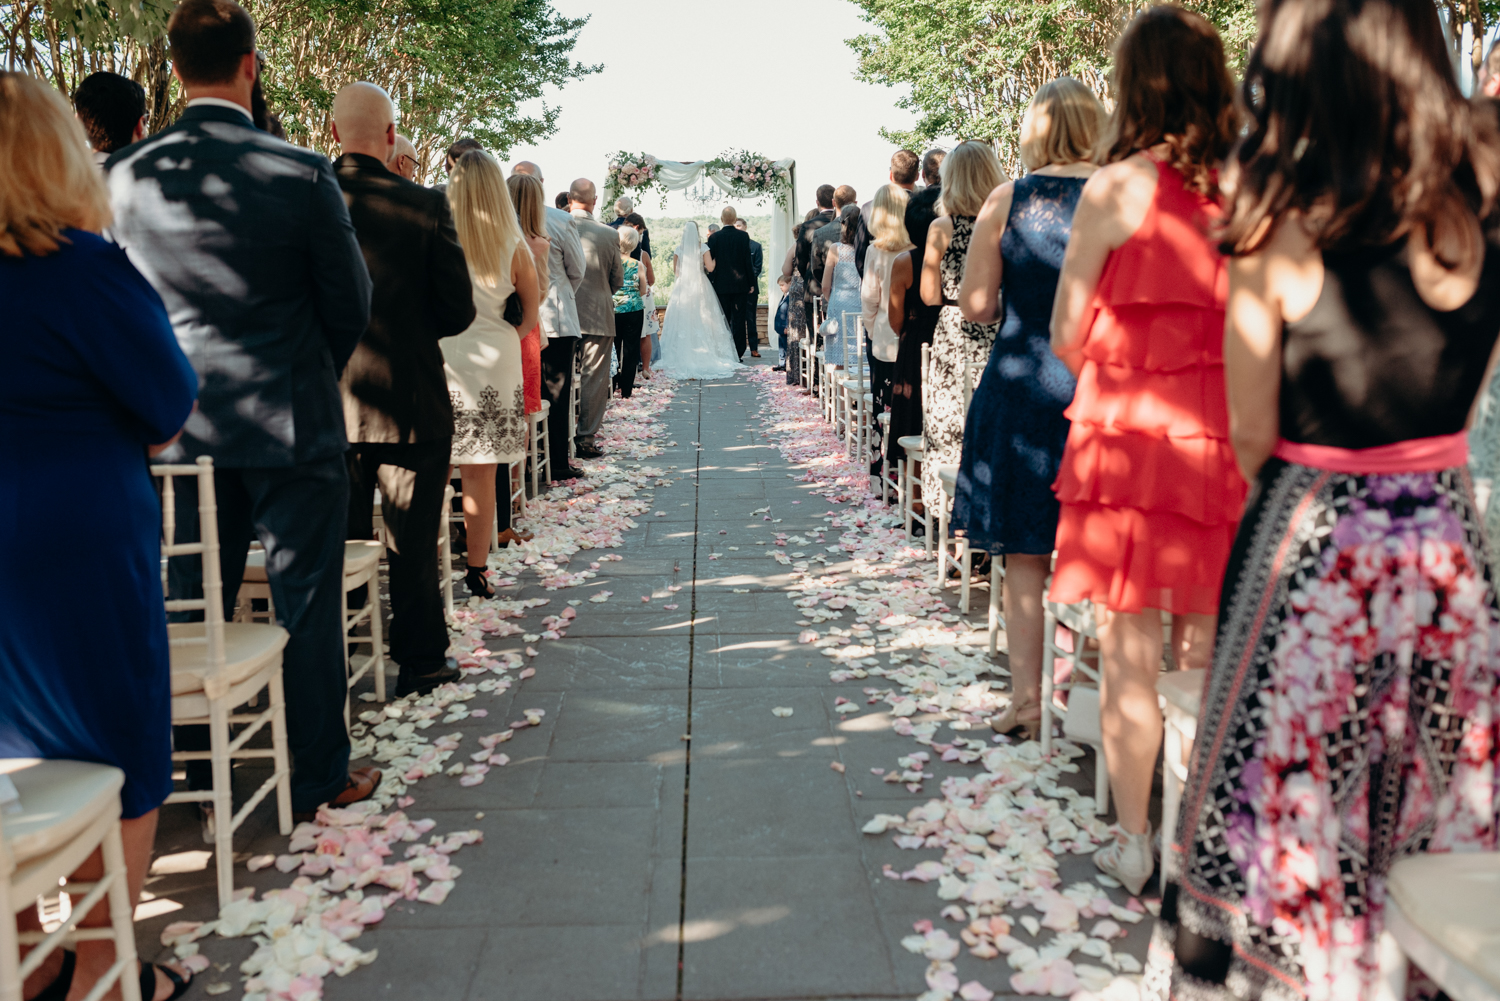 A crowd of guests looks down an aisle lined with rose petals during a wedding ceremony at Lansdowne resort.